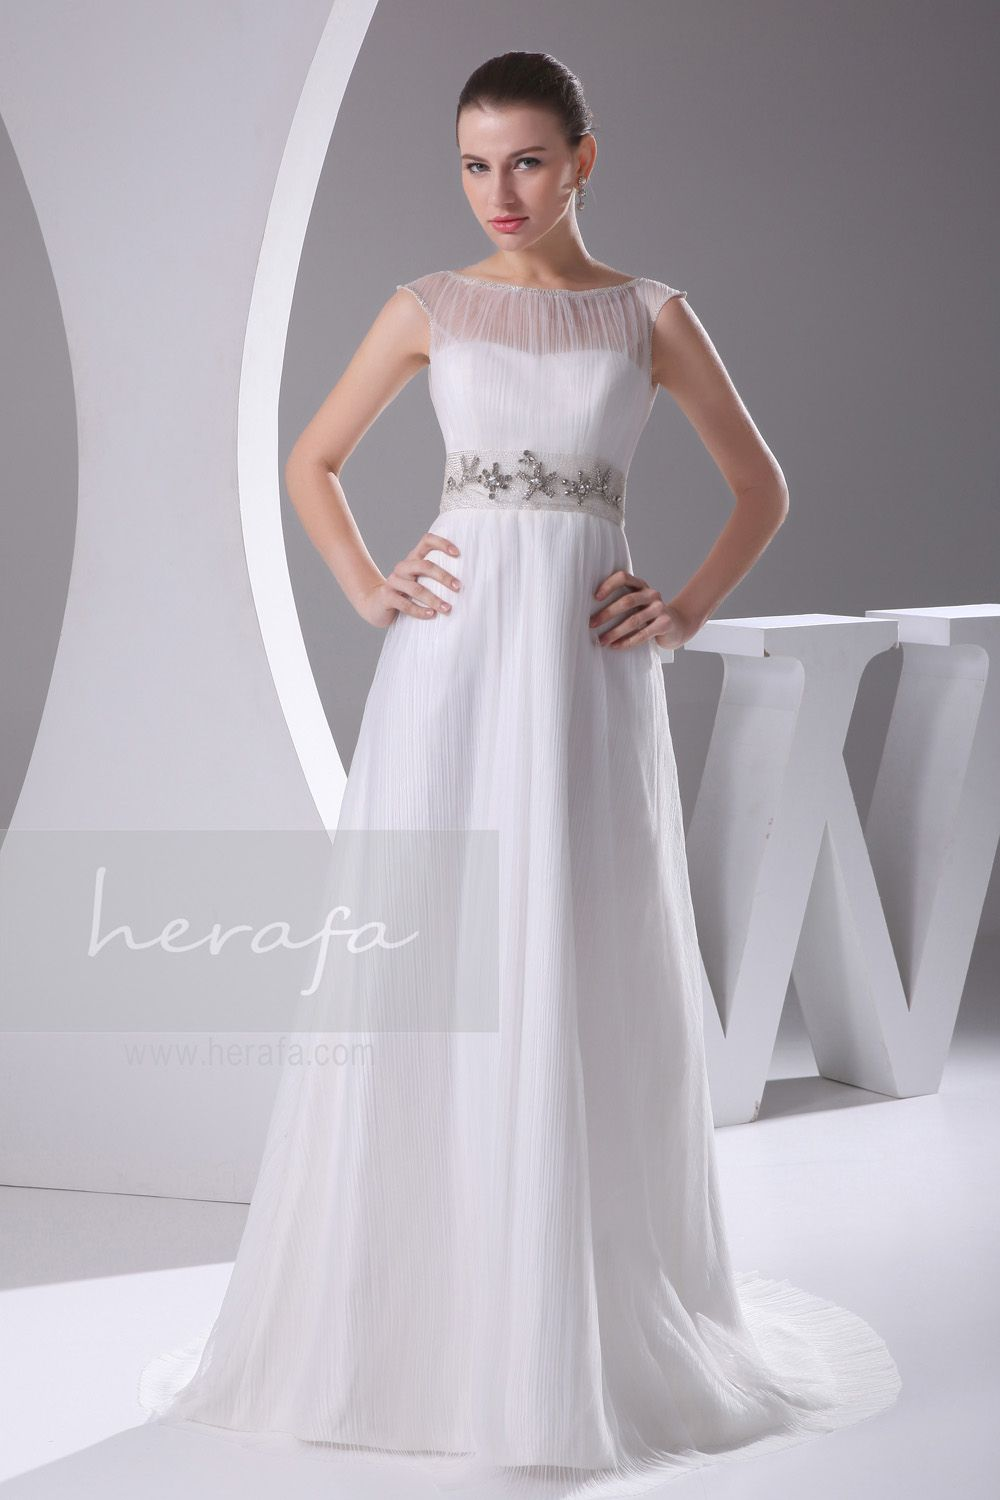 Herafaorenvy herafa dress pinterest